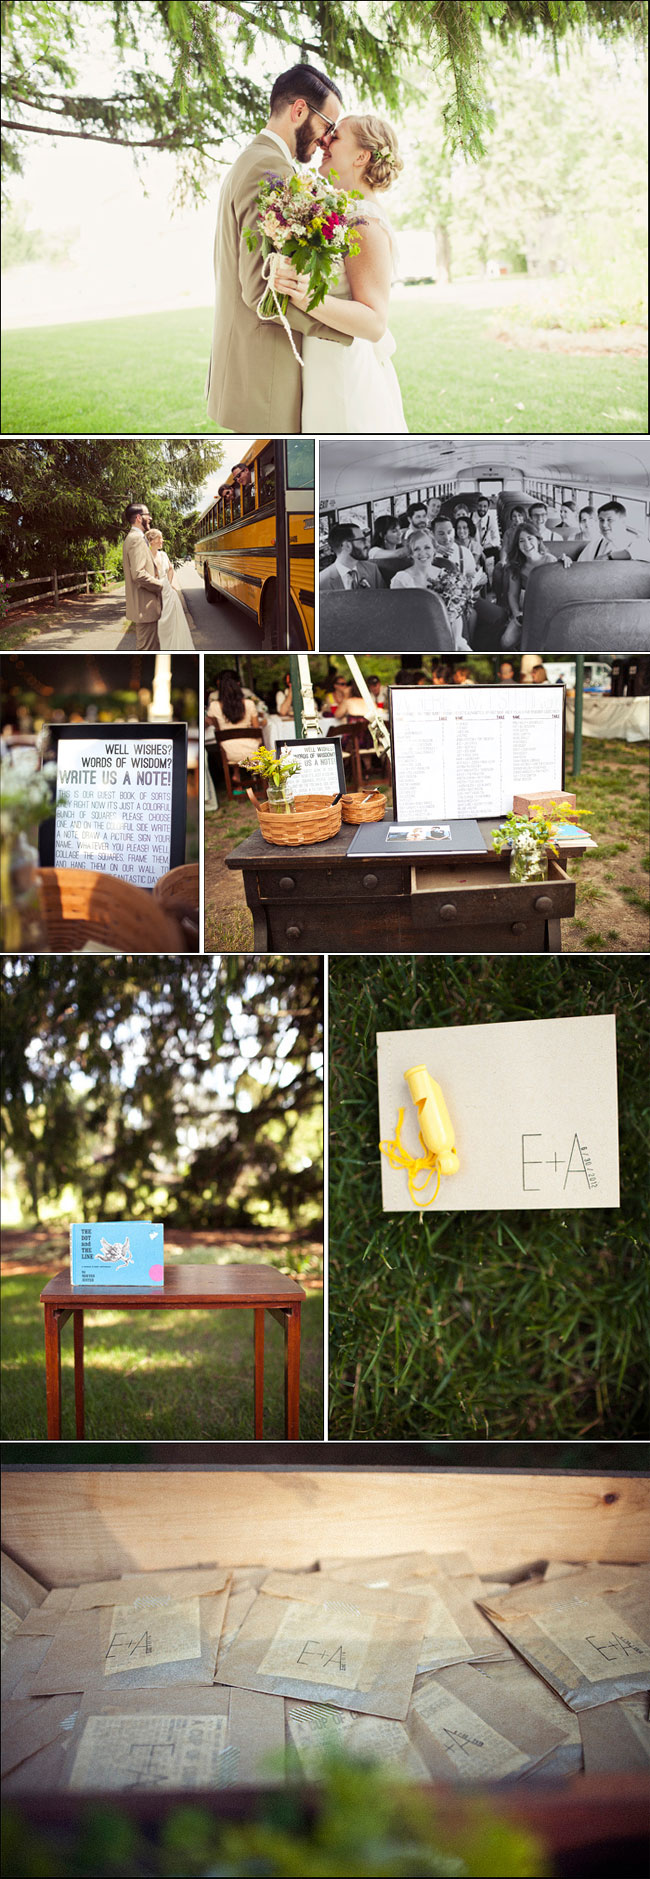 DIY Wedding in Massachusetts - bridal party on school bus, guest book signing area